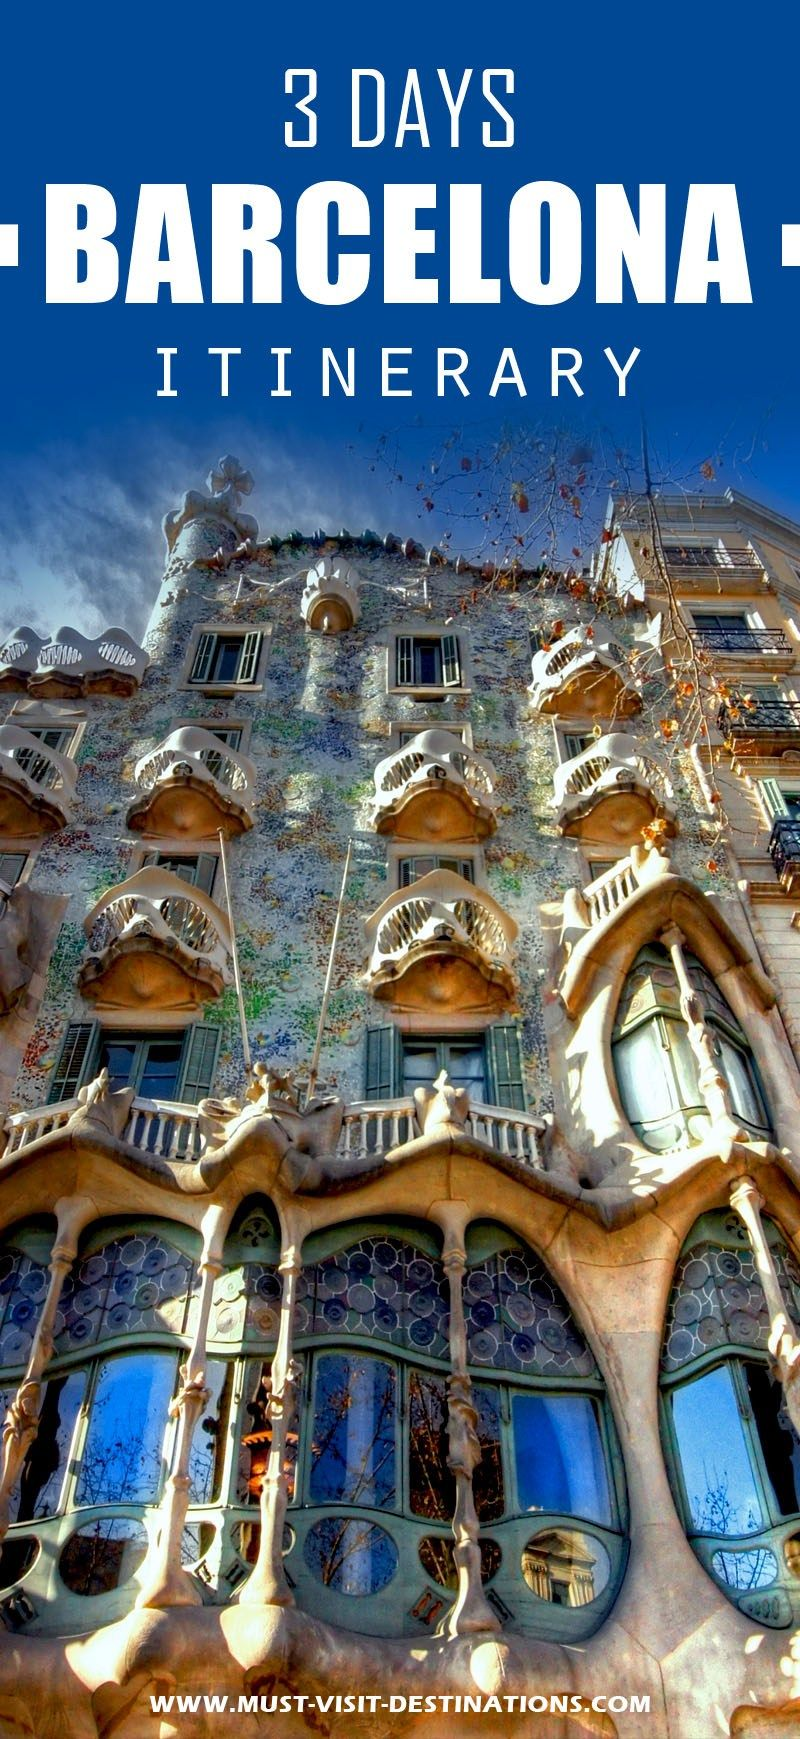 Only 3 days in Barcelona ? No problem! Check out this